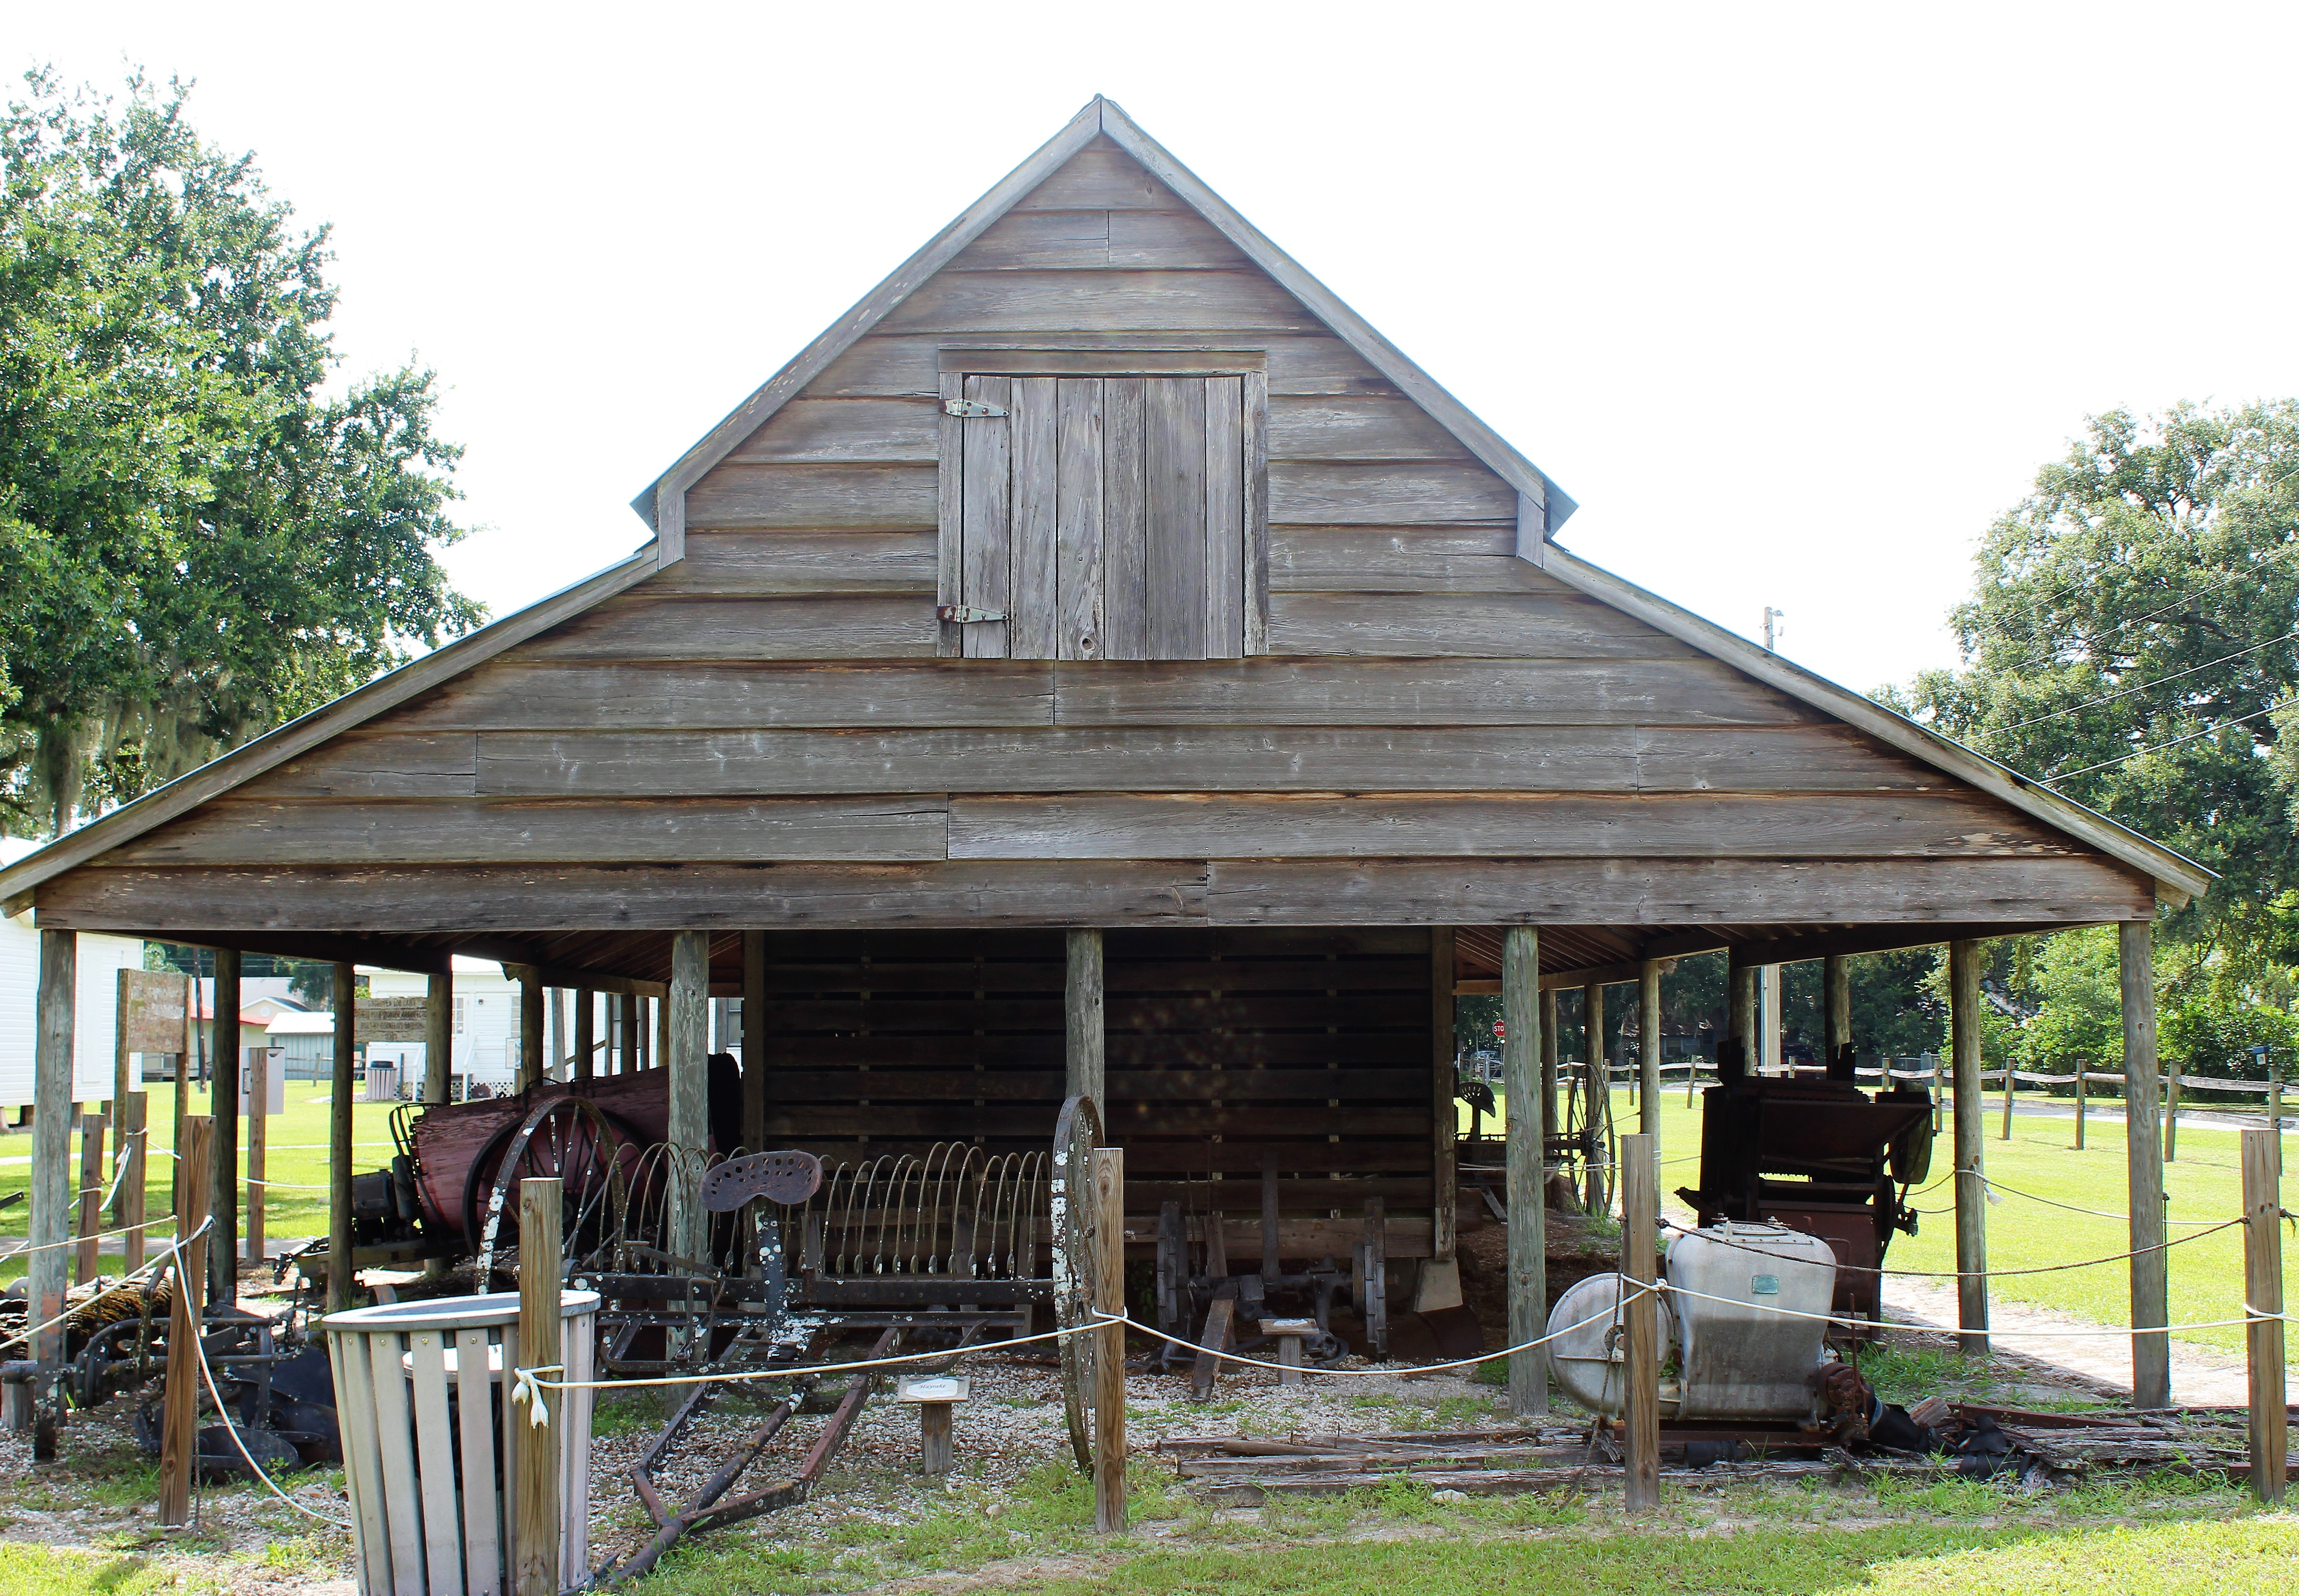 pole barndominium provides for superior colorado barn and buildings kits sheds amish scratching mueller resistance metal plans rays to kit house michigan shouse steel cabin uv interiors barndo barns builders homes floor